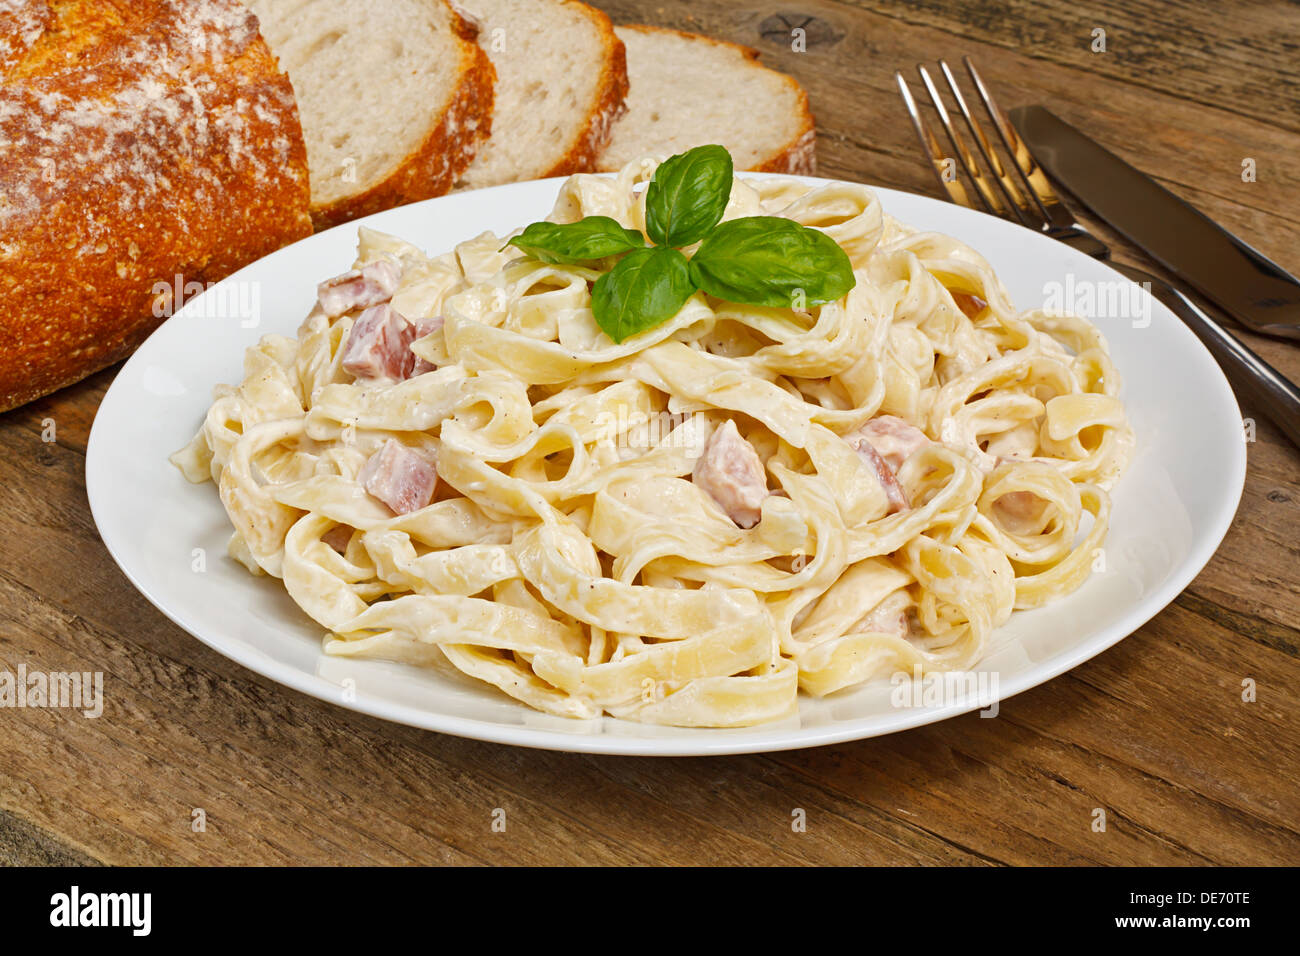 Plate of tagliatelli carbonara italian food in a rustic restaurant setting - Stock Image